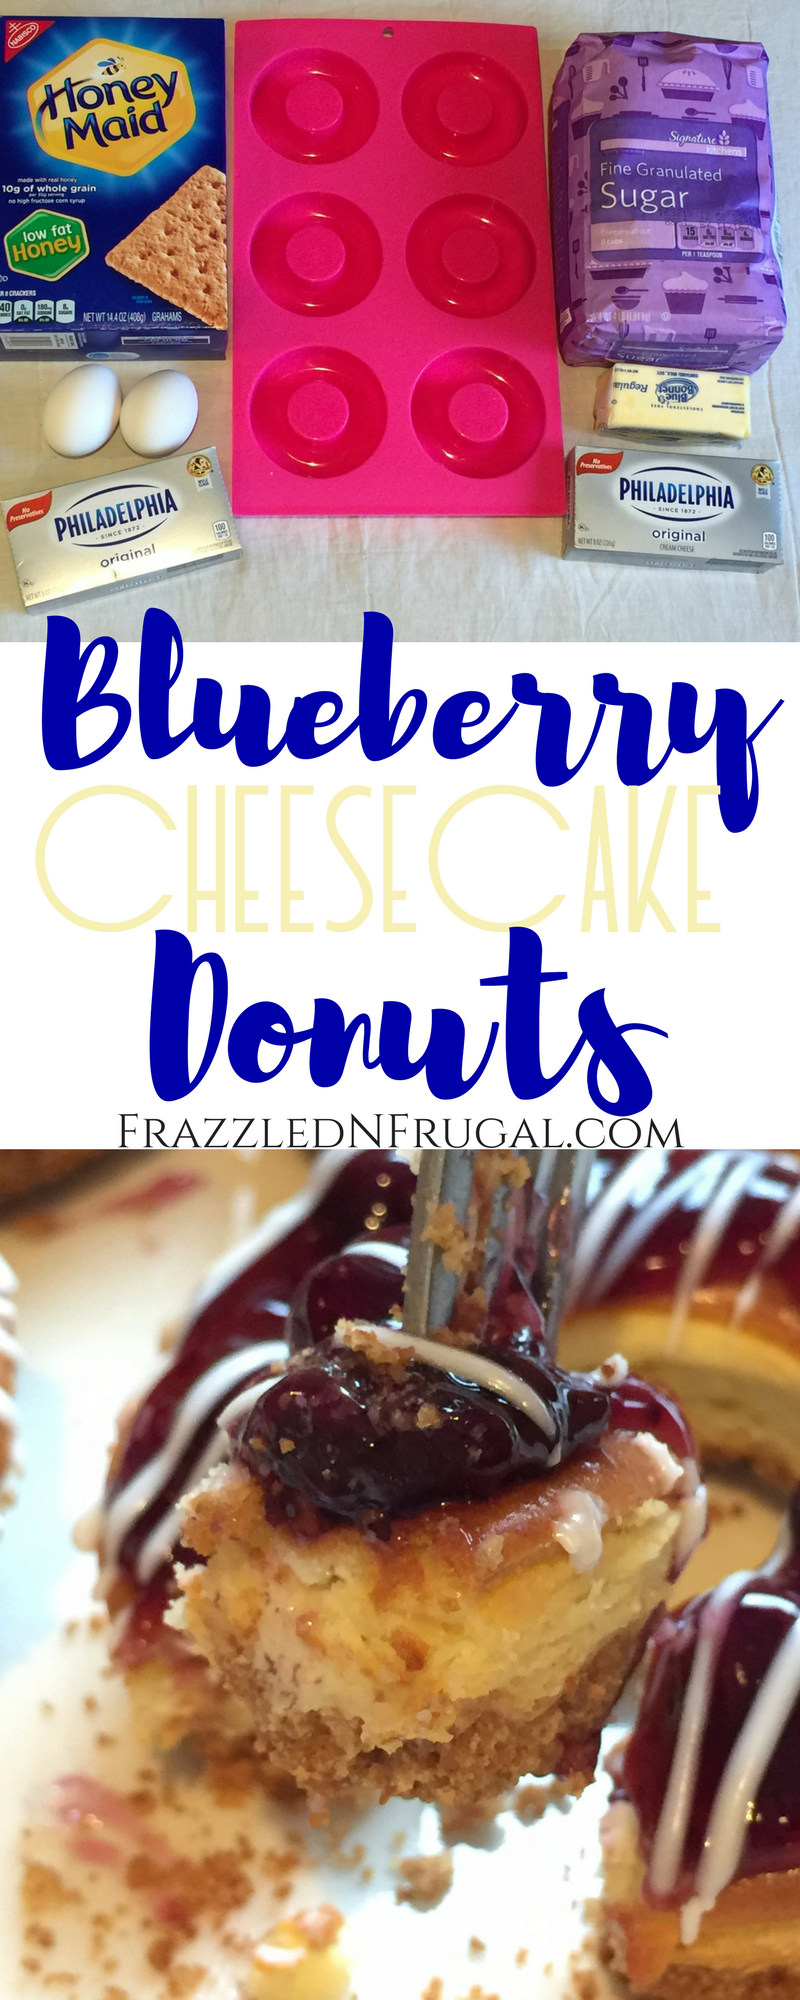 Blueberry Cheesecake Donuts